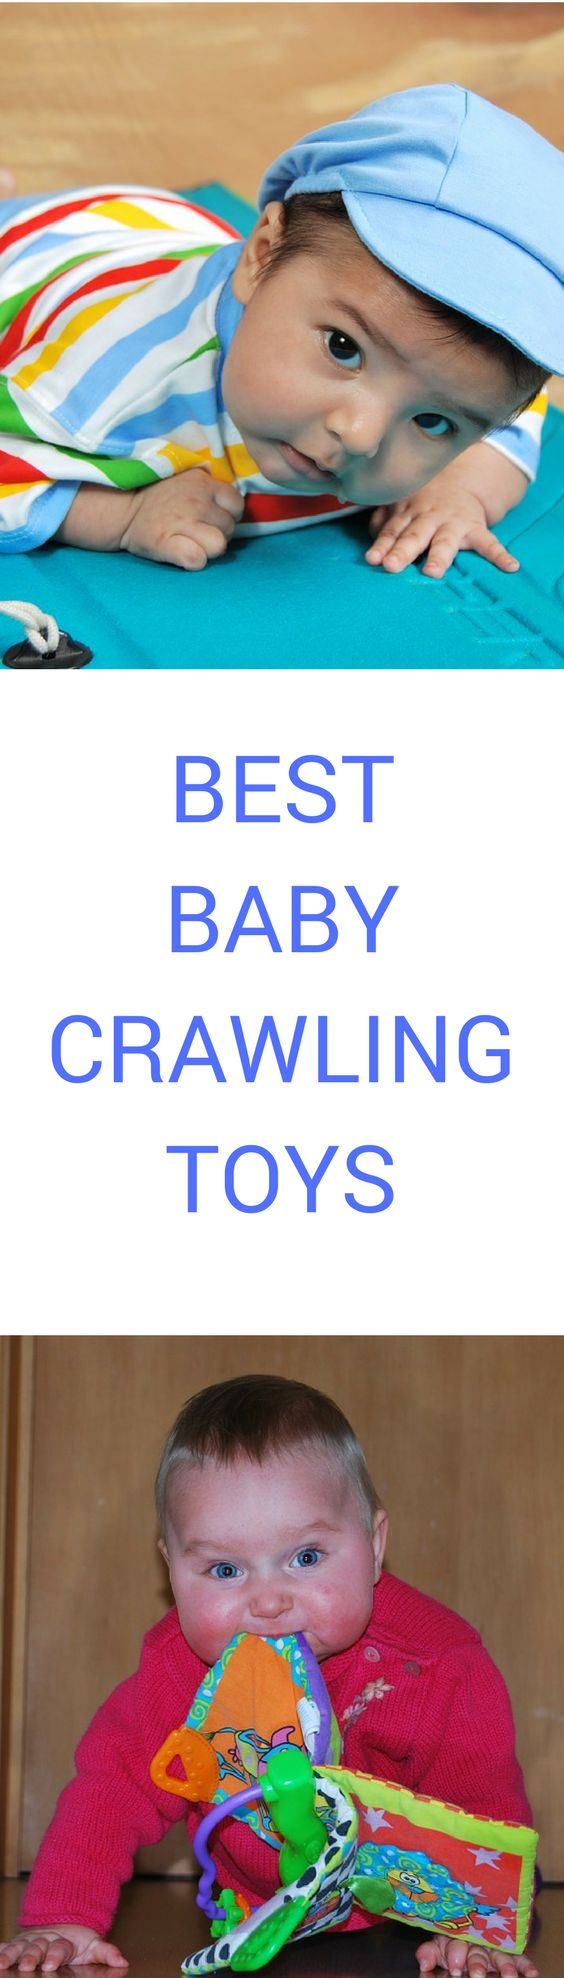 Must Have Toys that Promote Crawling- Best Baby Crawling ...